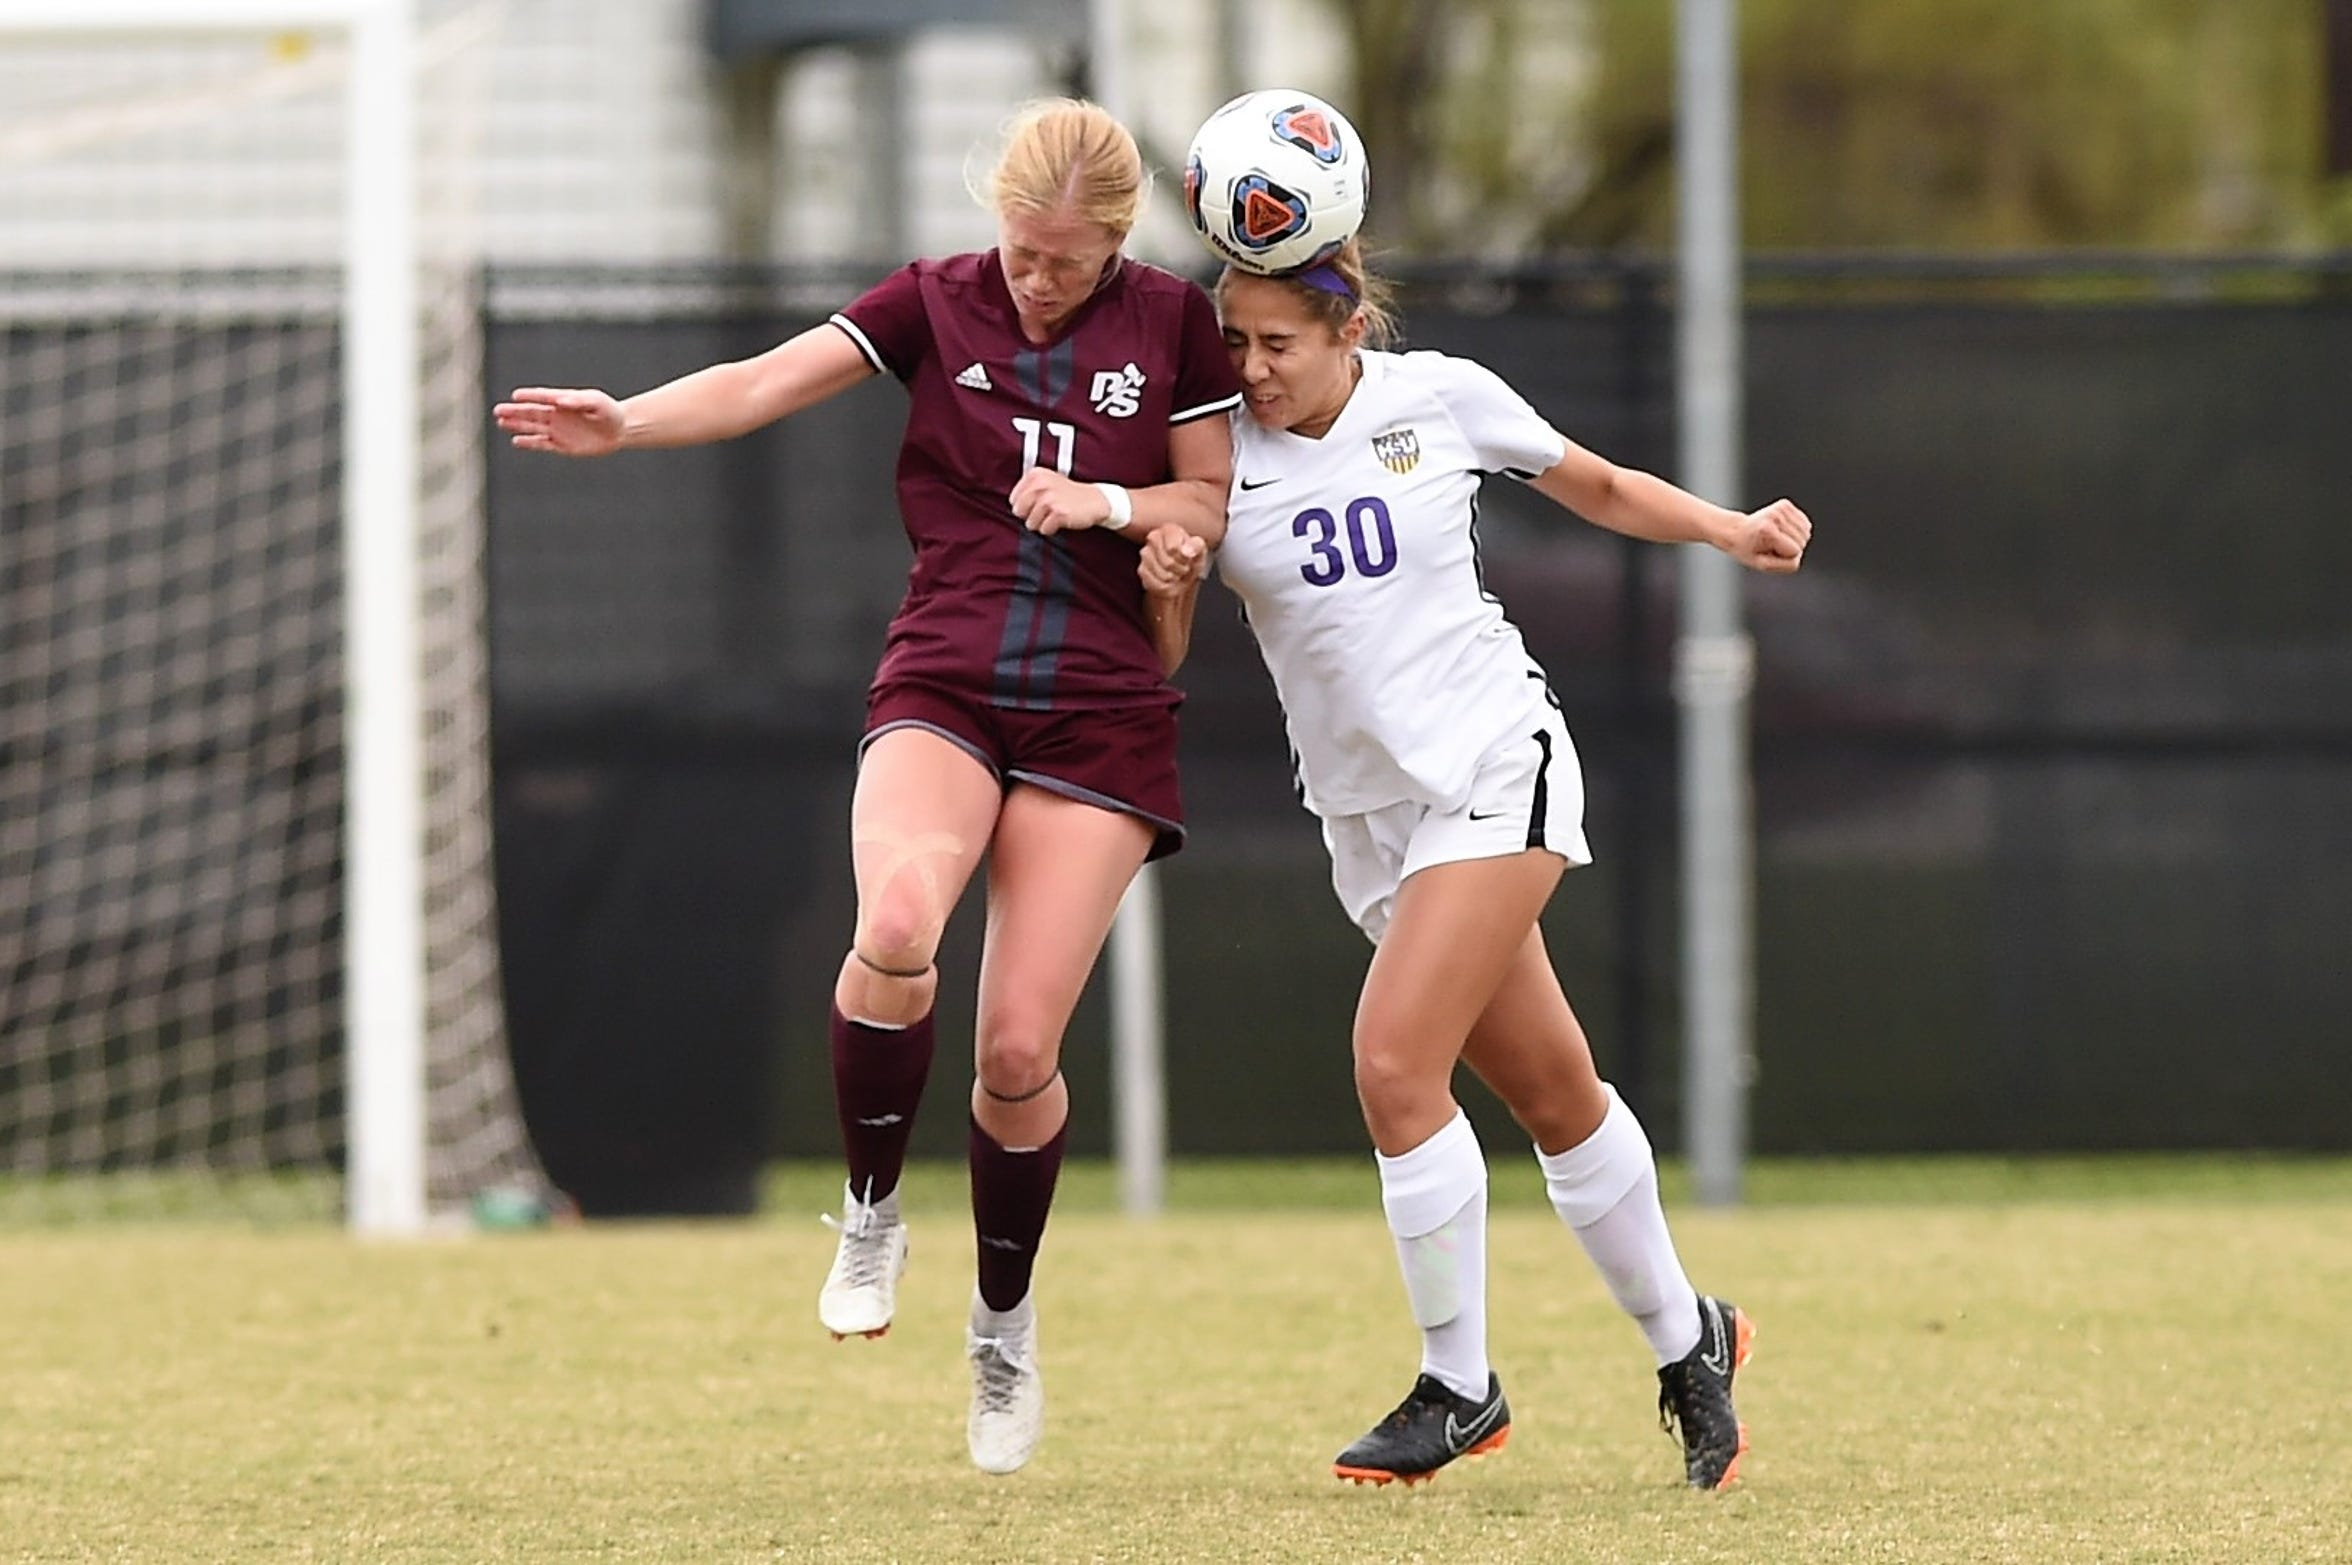 Hardin-Simmons freshman Mackensie Moreno (30) heads the ball away from Puget Sound's Gabbie Berg (11) during the NCAA tournament's first round. Moreno has developed into a quality defender for the Cowgirls this season.